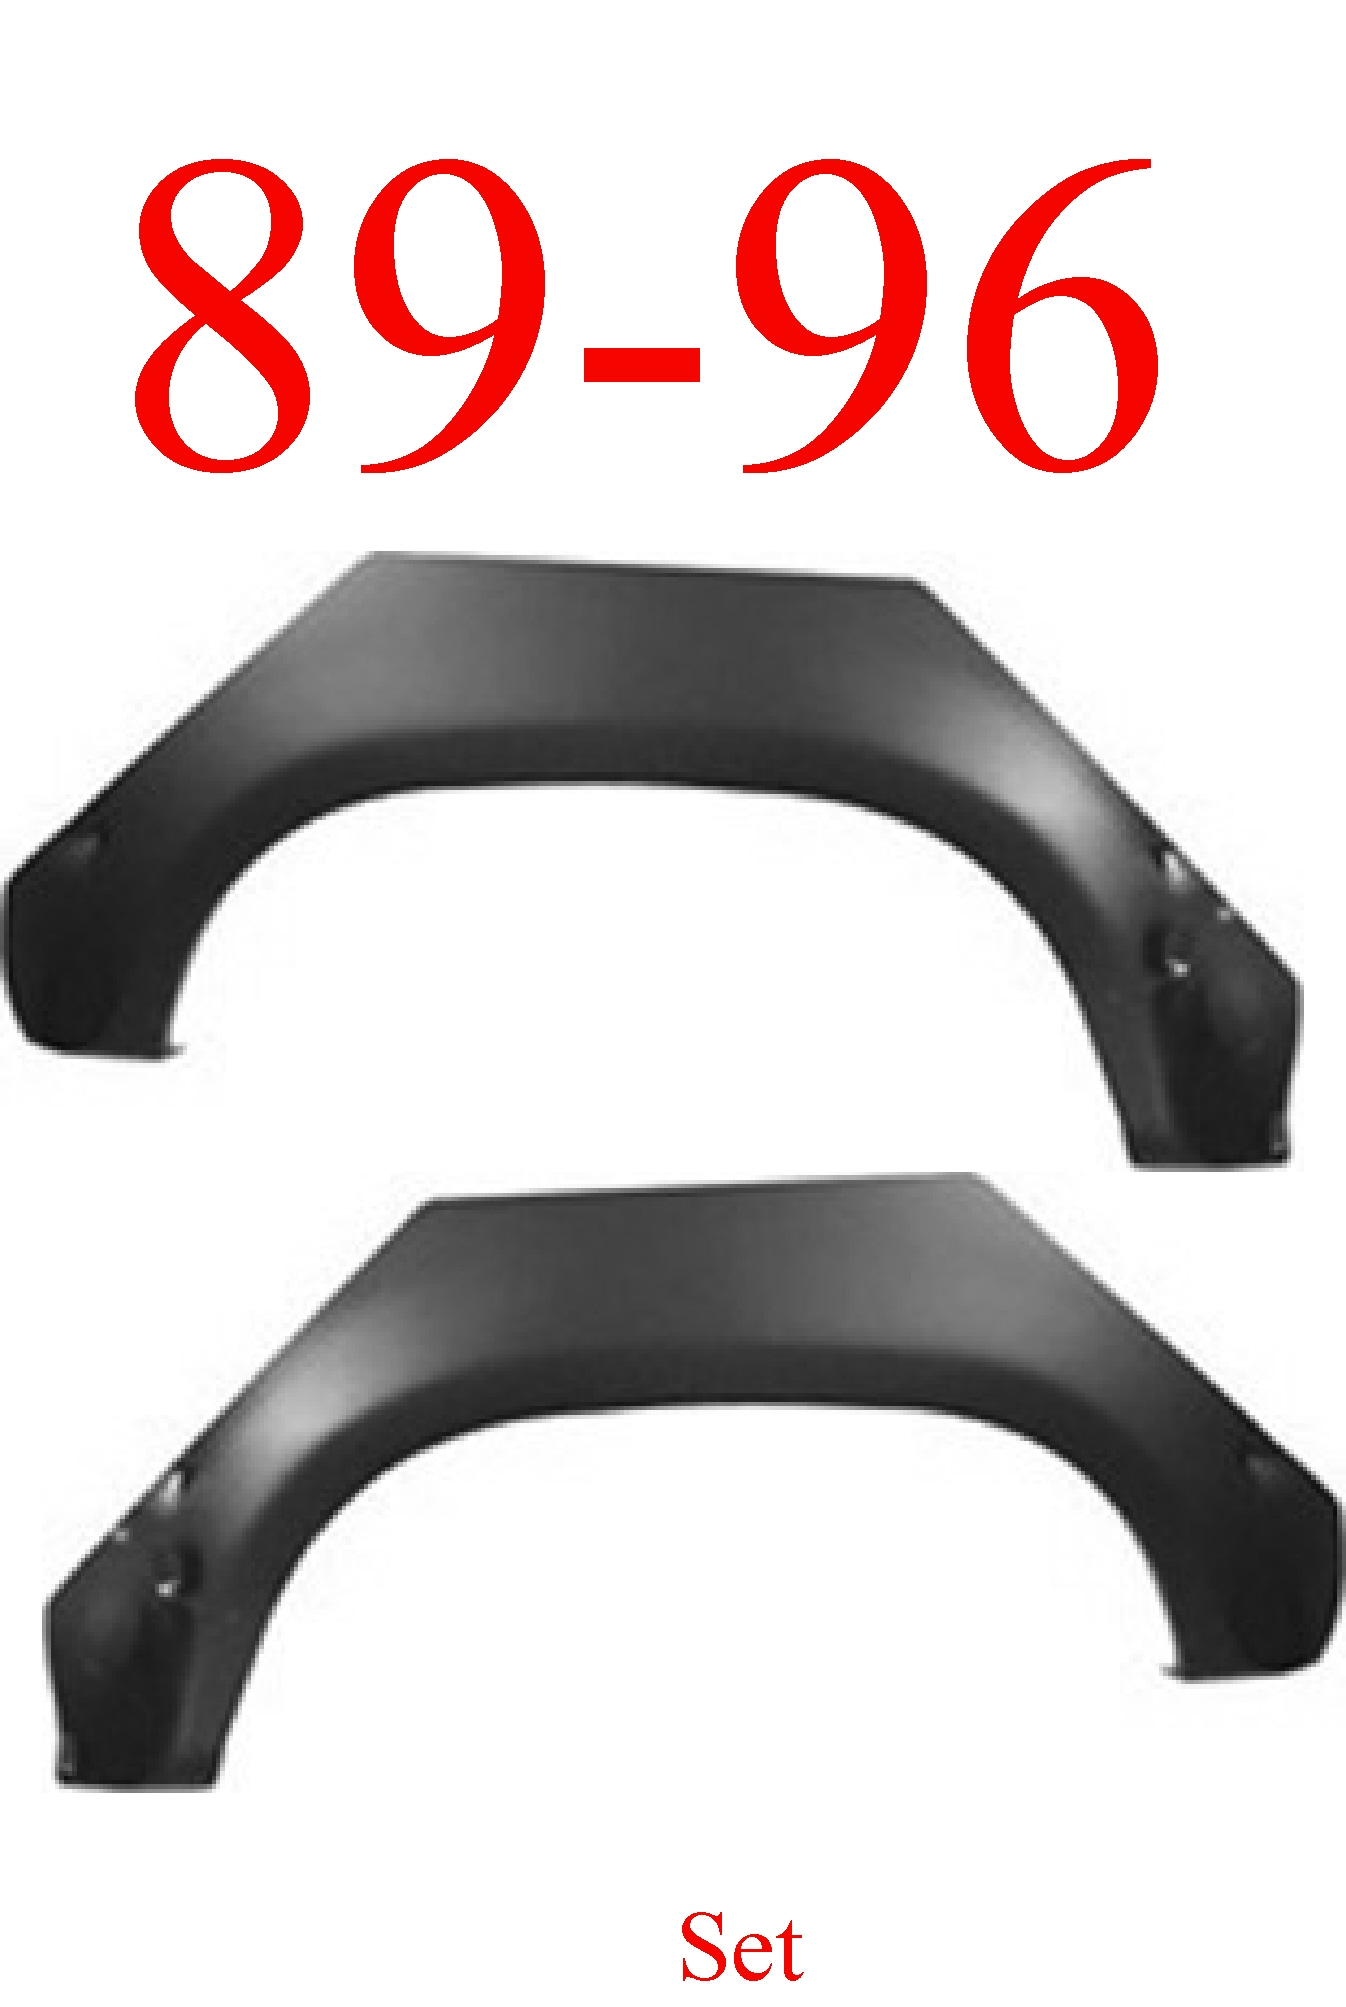 89-96 Toyota Pick Up Upper Arch Set Panel